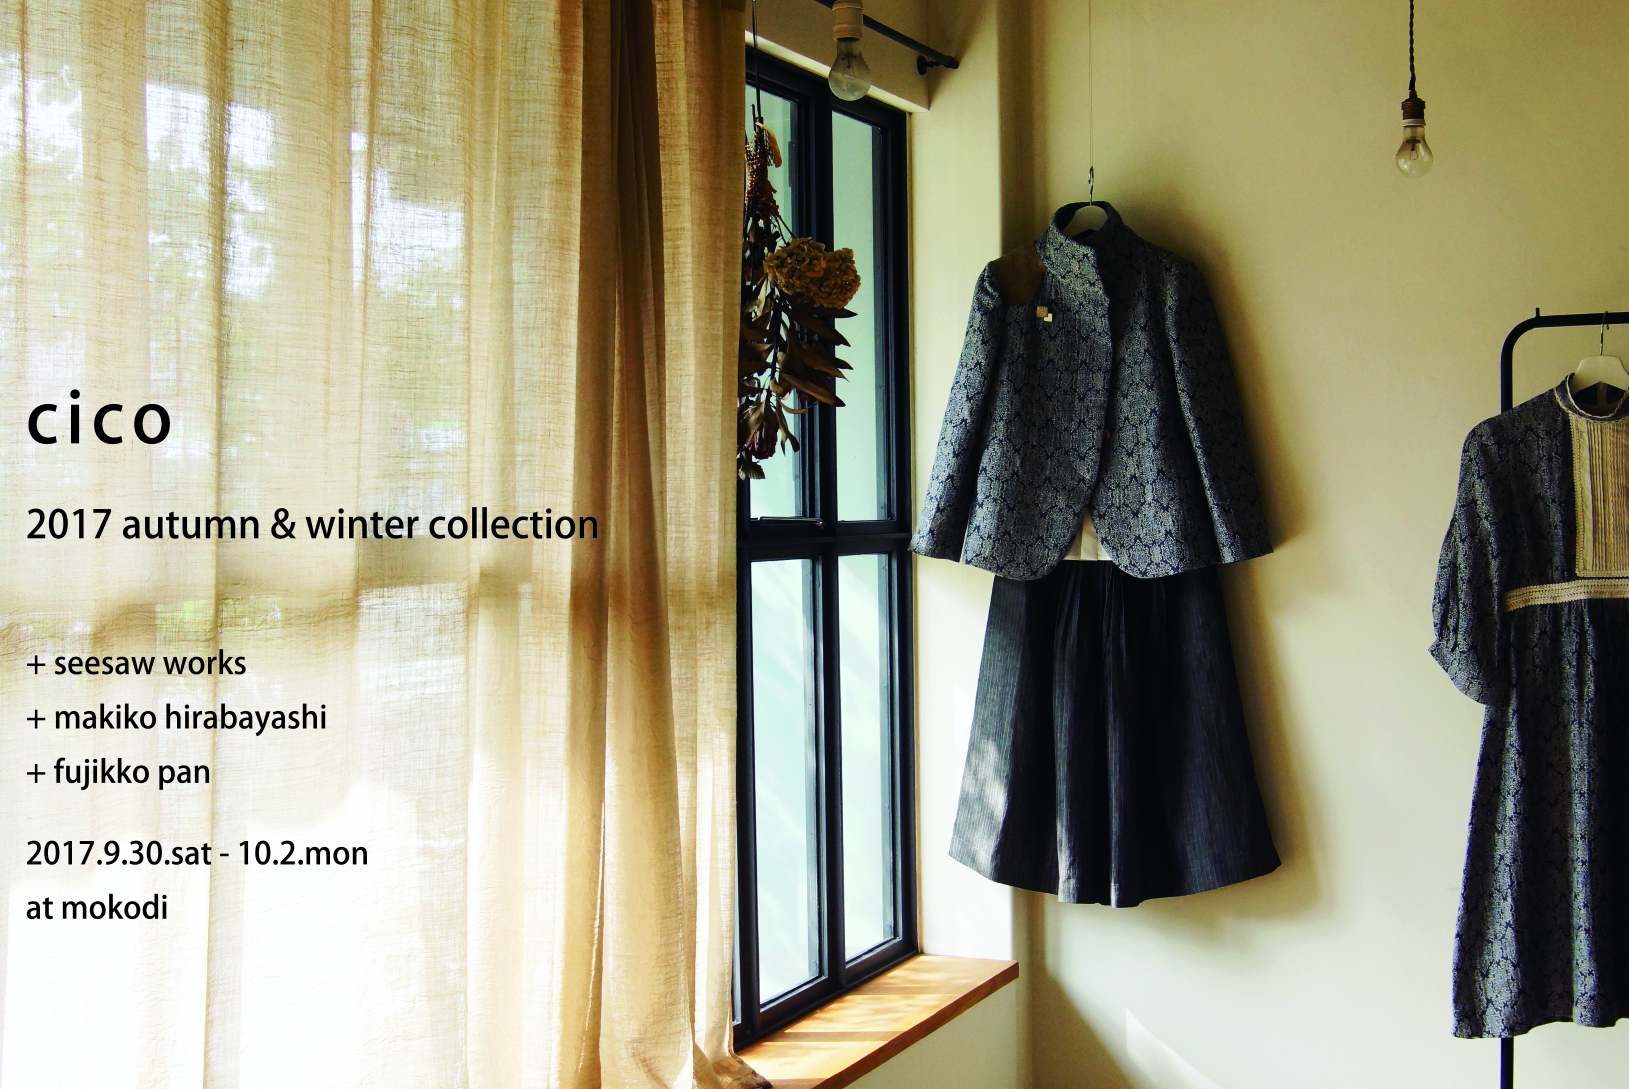 cico 2017 autumn&winter collection +seesaw works + makiko hirabayashi + fujiccopan 2017.9.30~